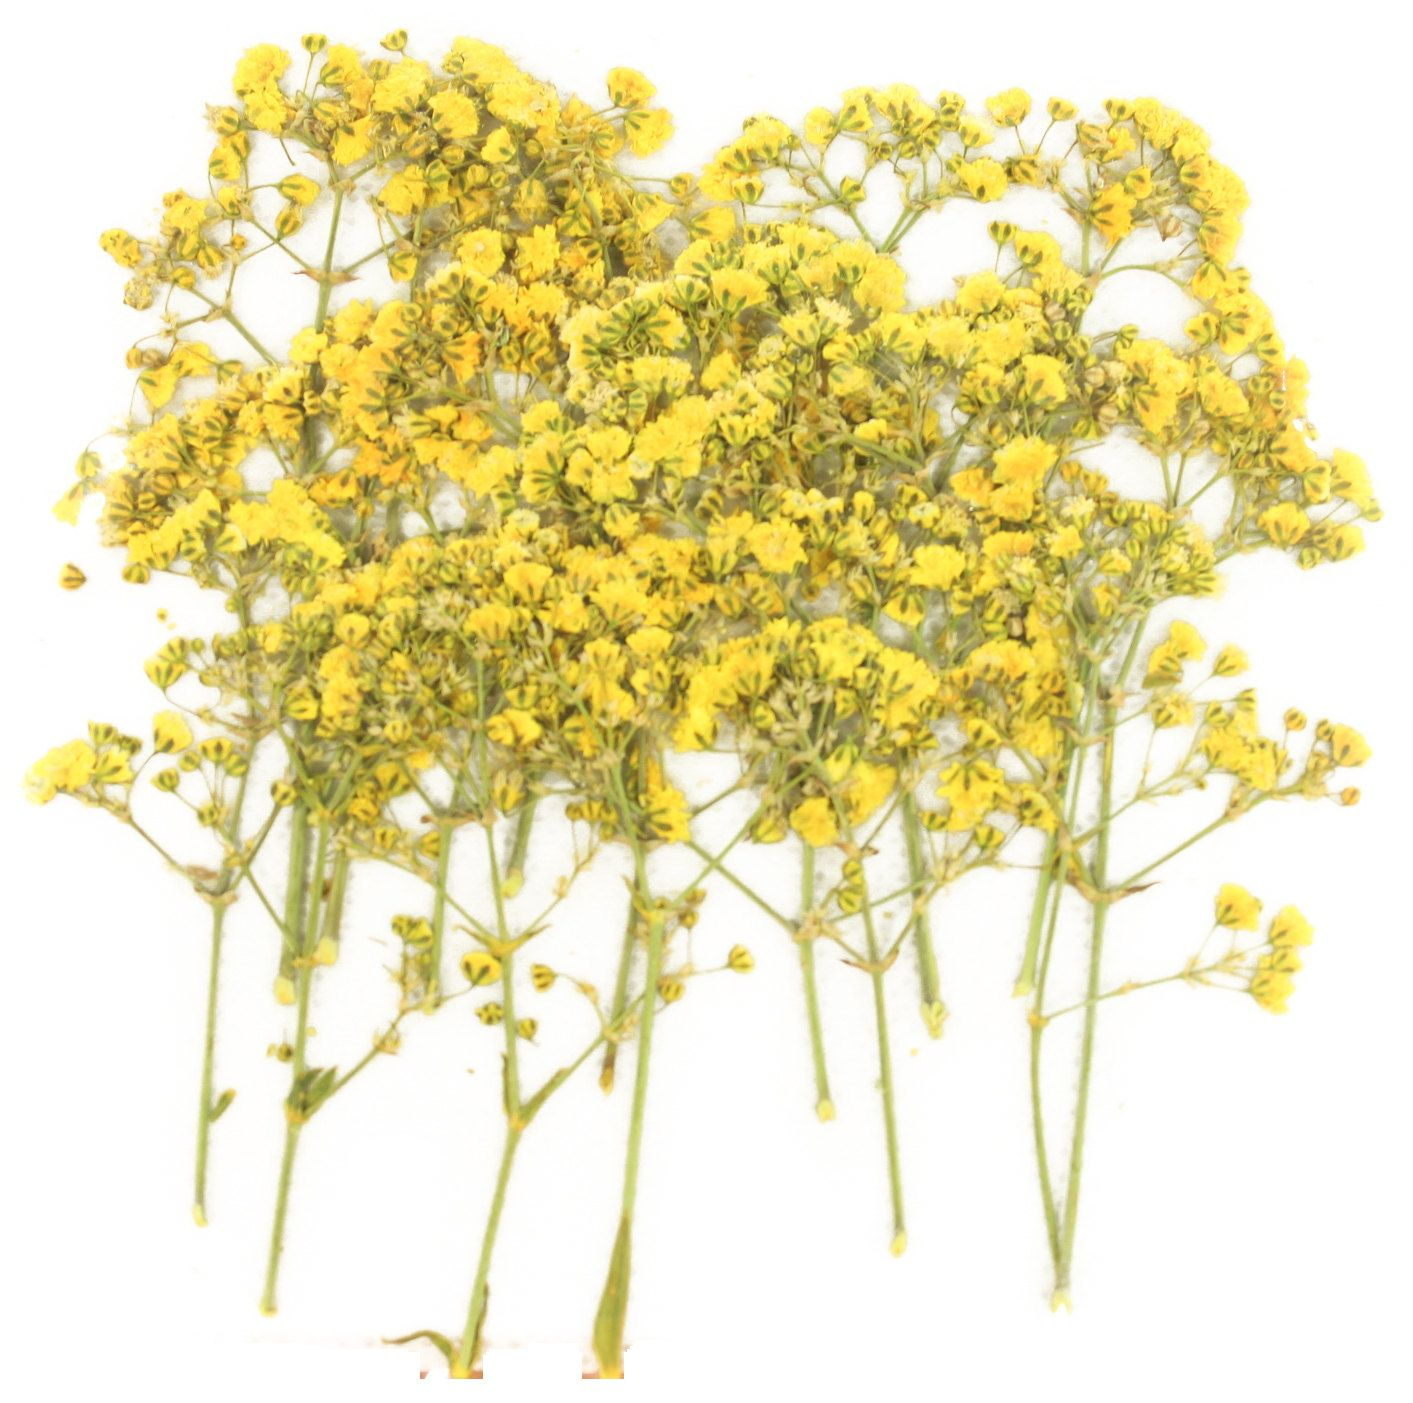 Pressed Flowers Yellow Baby Breath Gypsophila 20pcs For Floral Art Craft Card Making Scrapbooking Pressed Flowers Baby Yellow Babys Breath